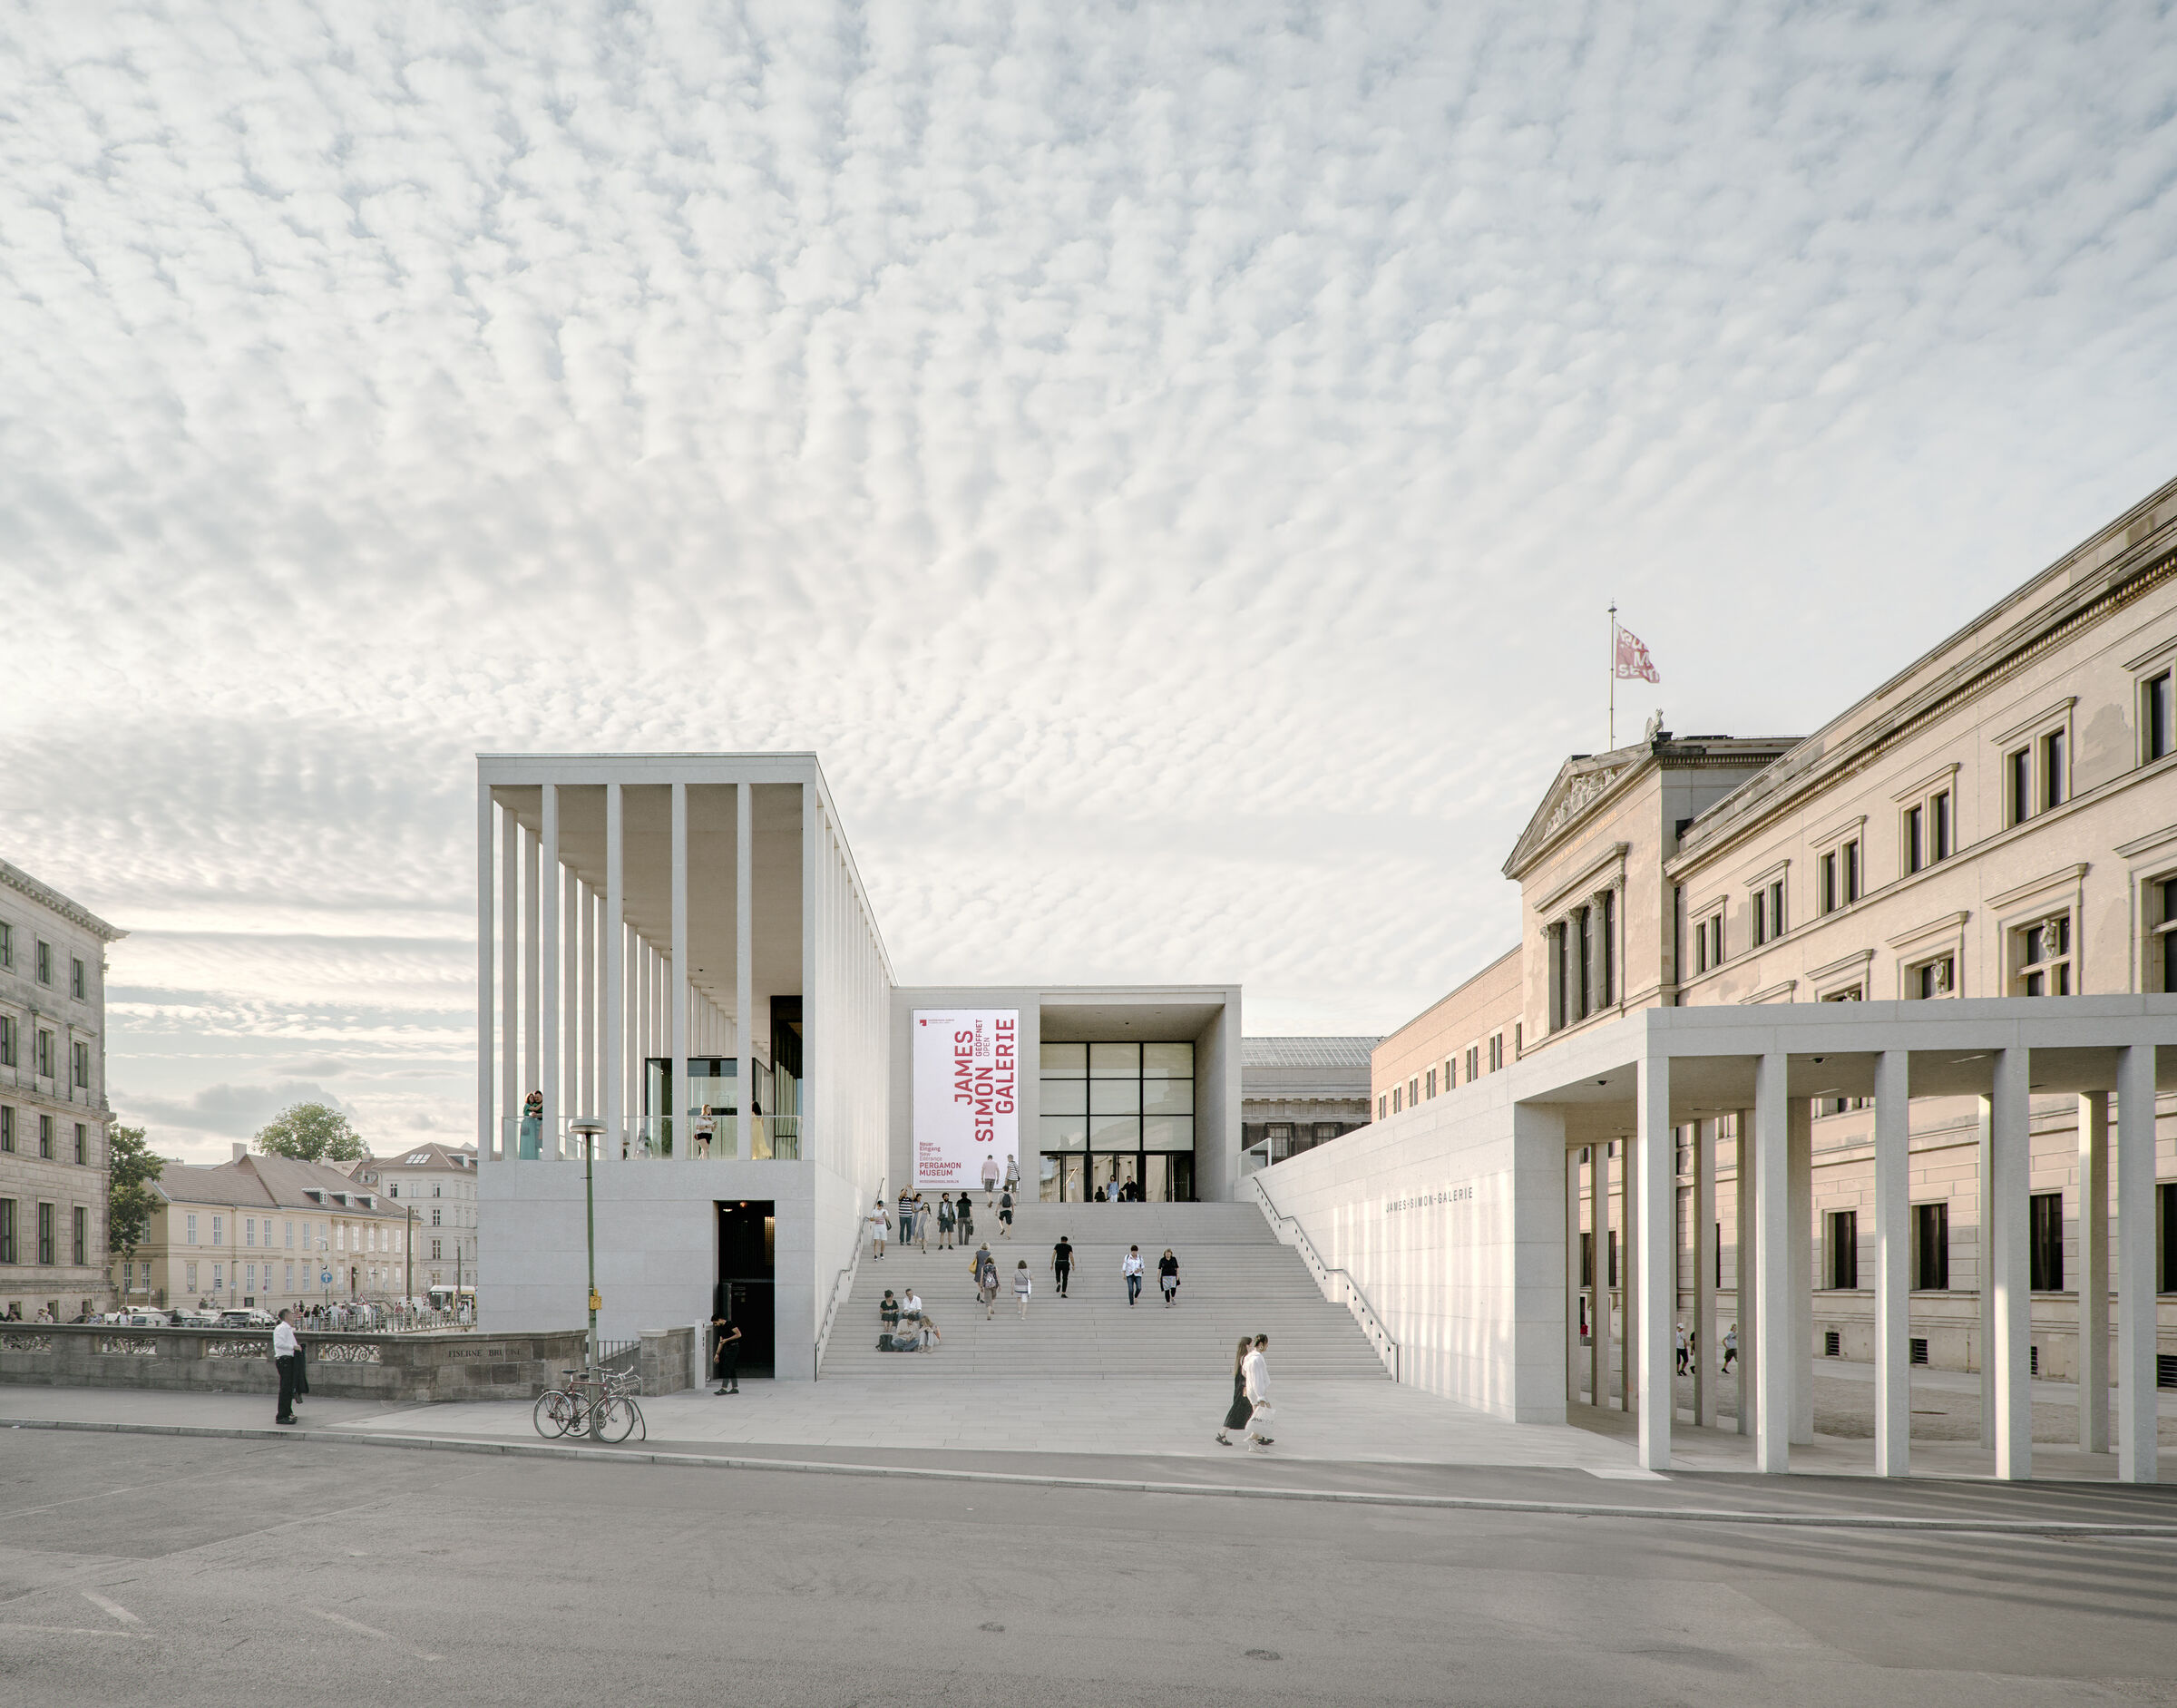 James-Simon-Galerie_Germany_ David Chipperfield Architects Berlin_photograph by Simon Menges.jpg